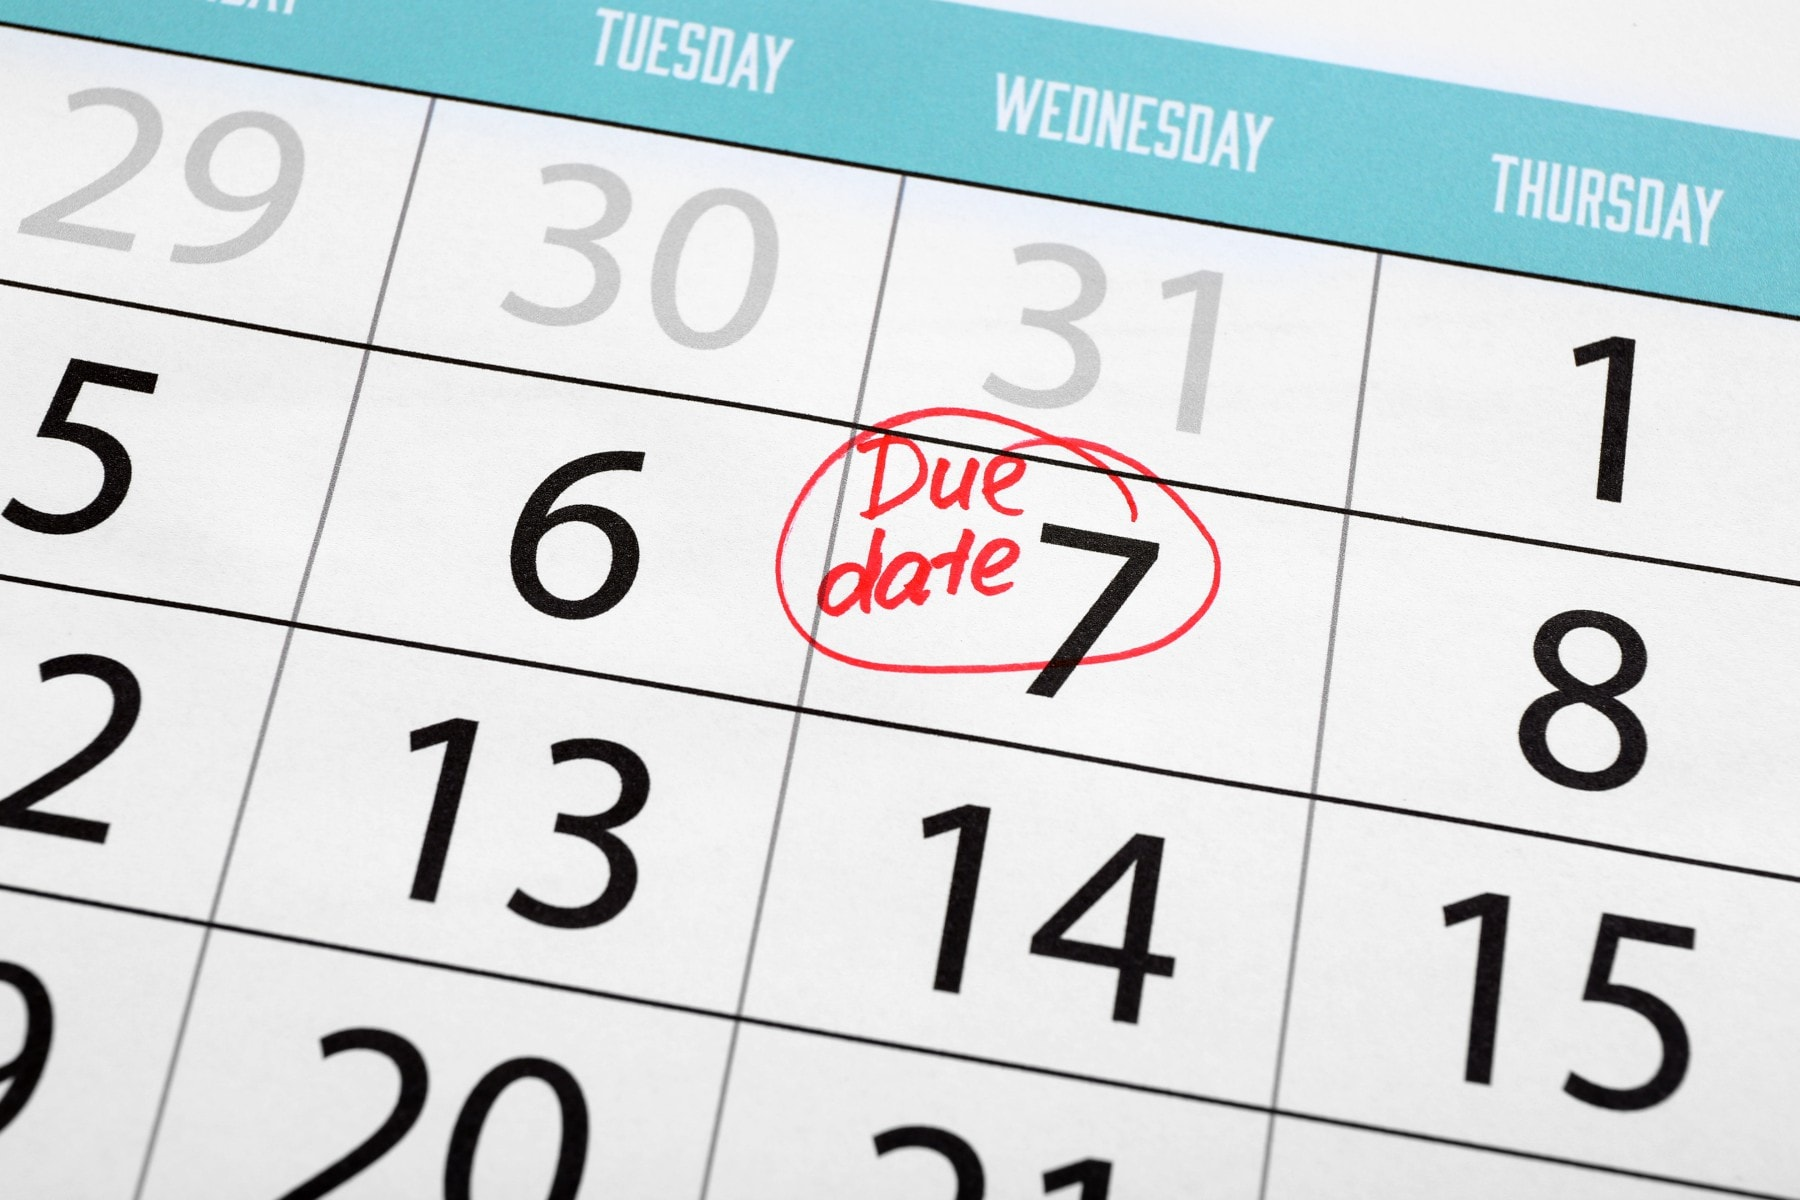 Due date written and circled in calendar, close up